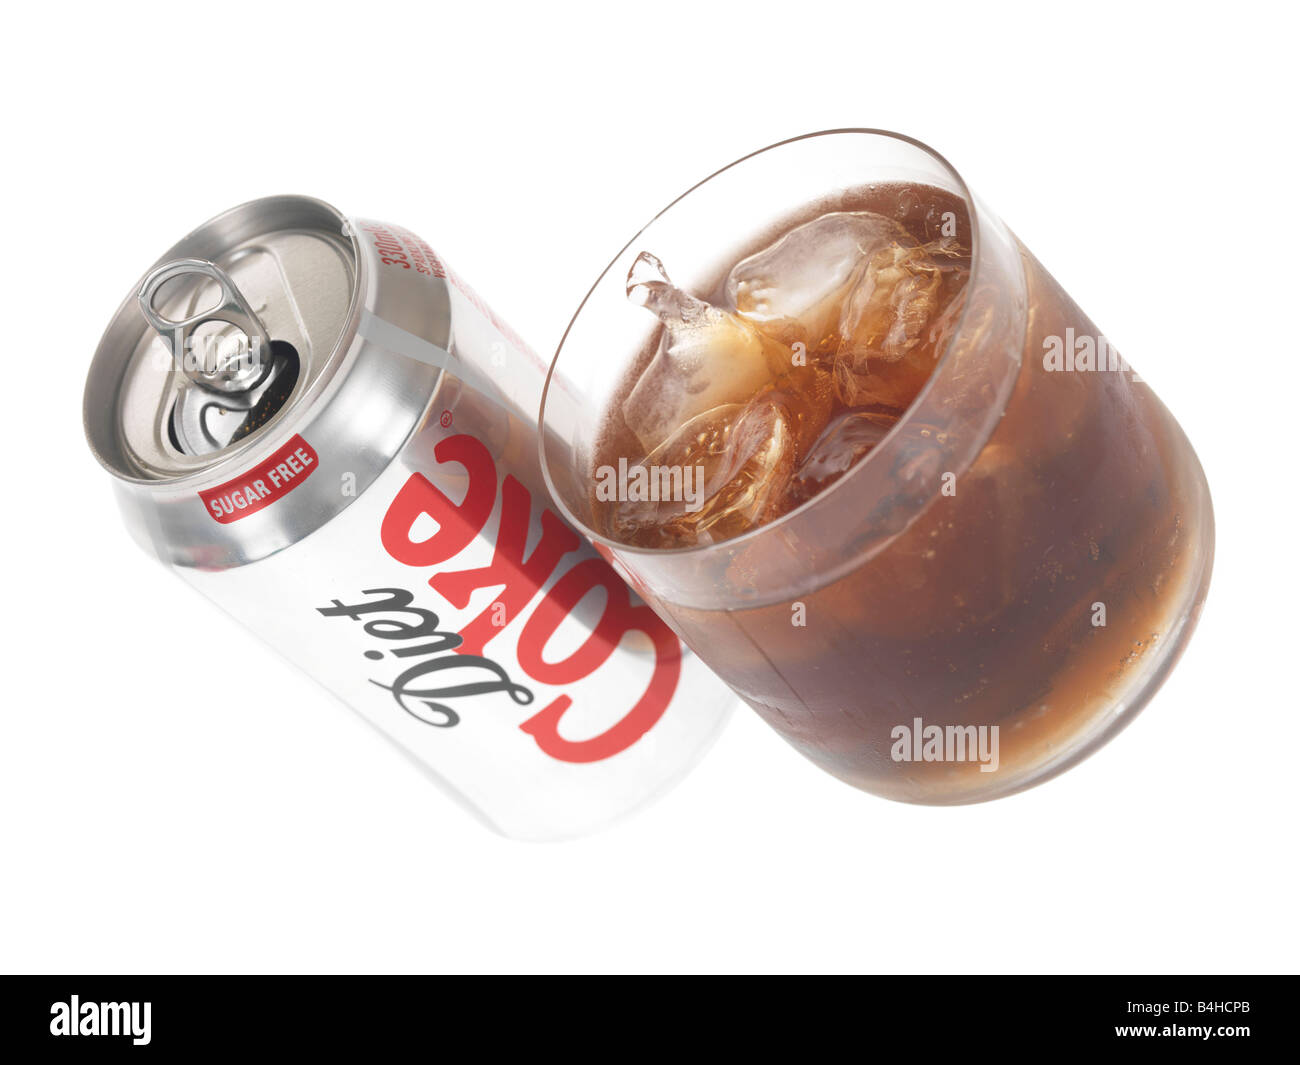 Diet Coke Pictures and Images